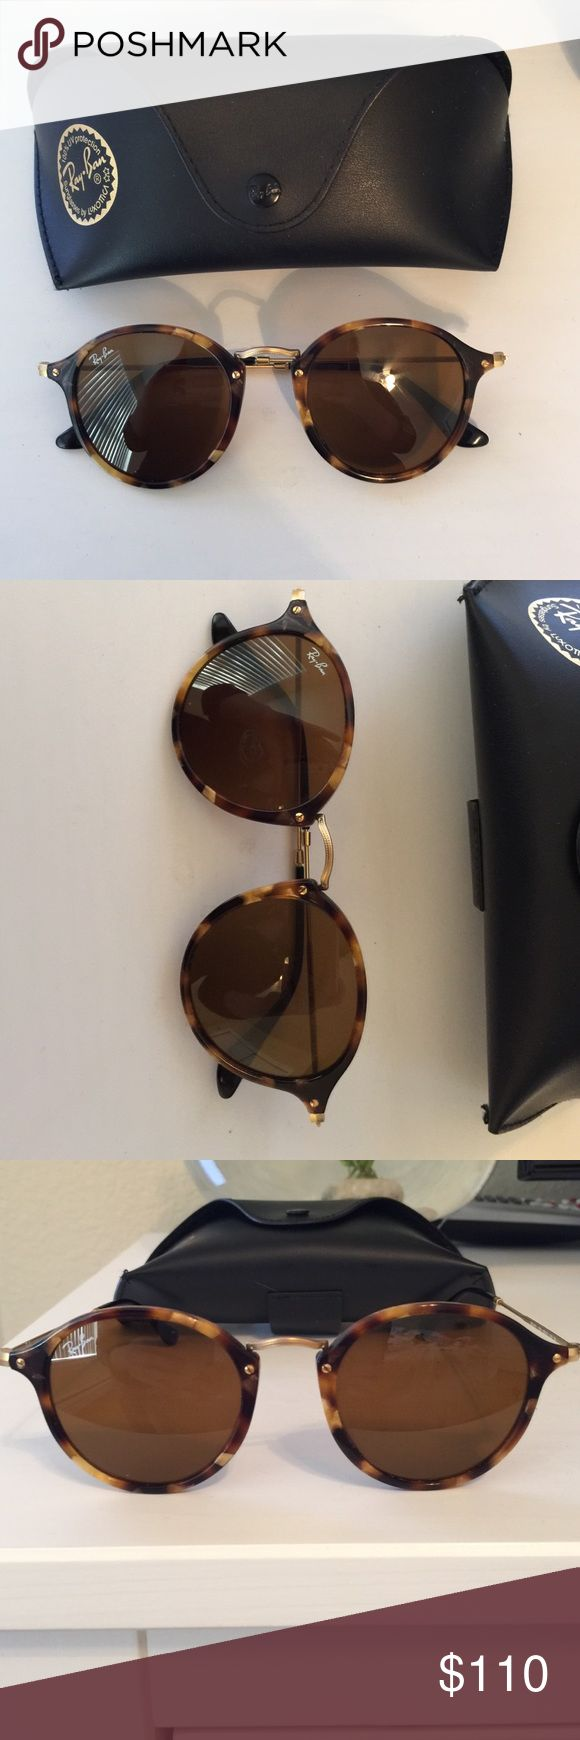 Rayban round fleck sunglasses Ray ban round fleck sunglasses. Tortoise coloring with gold nose piece. Excellent condition. Ray-Ban Accessories Sunglasses